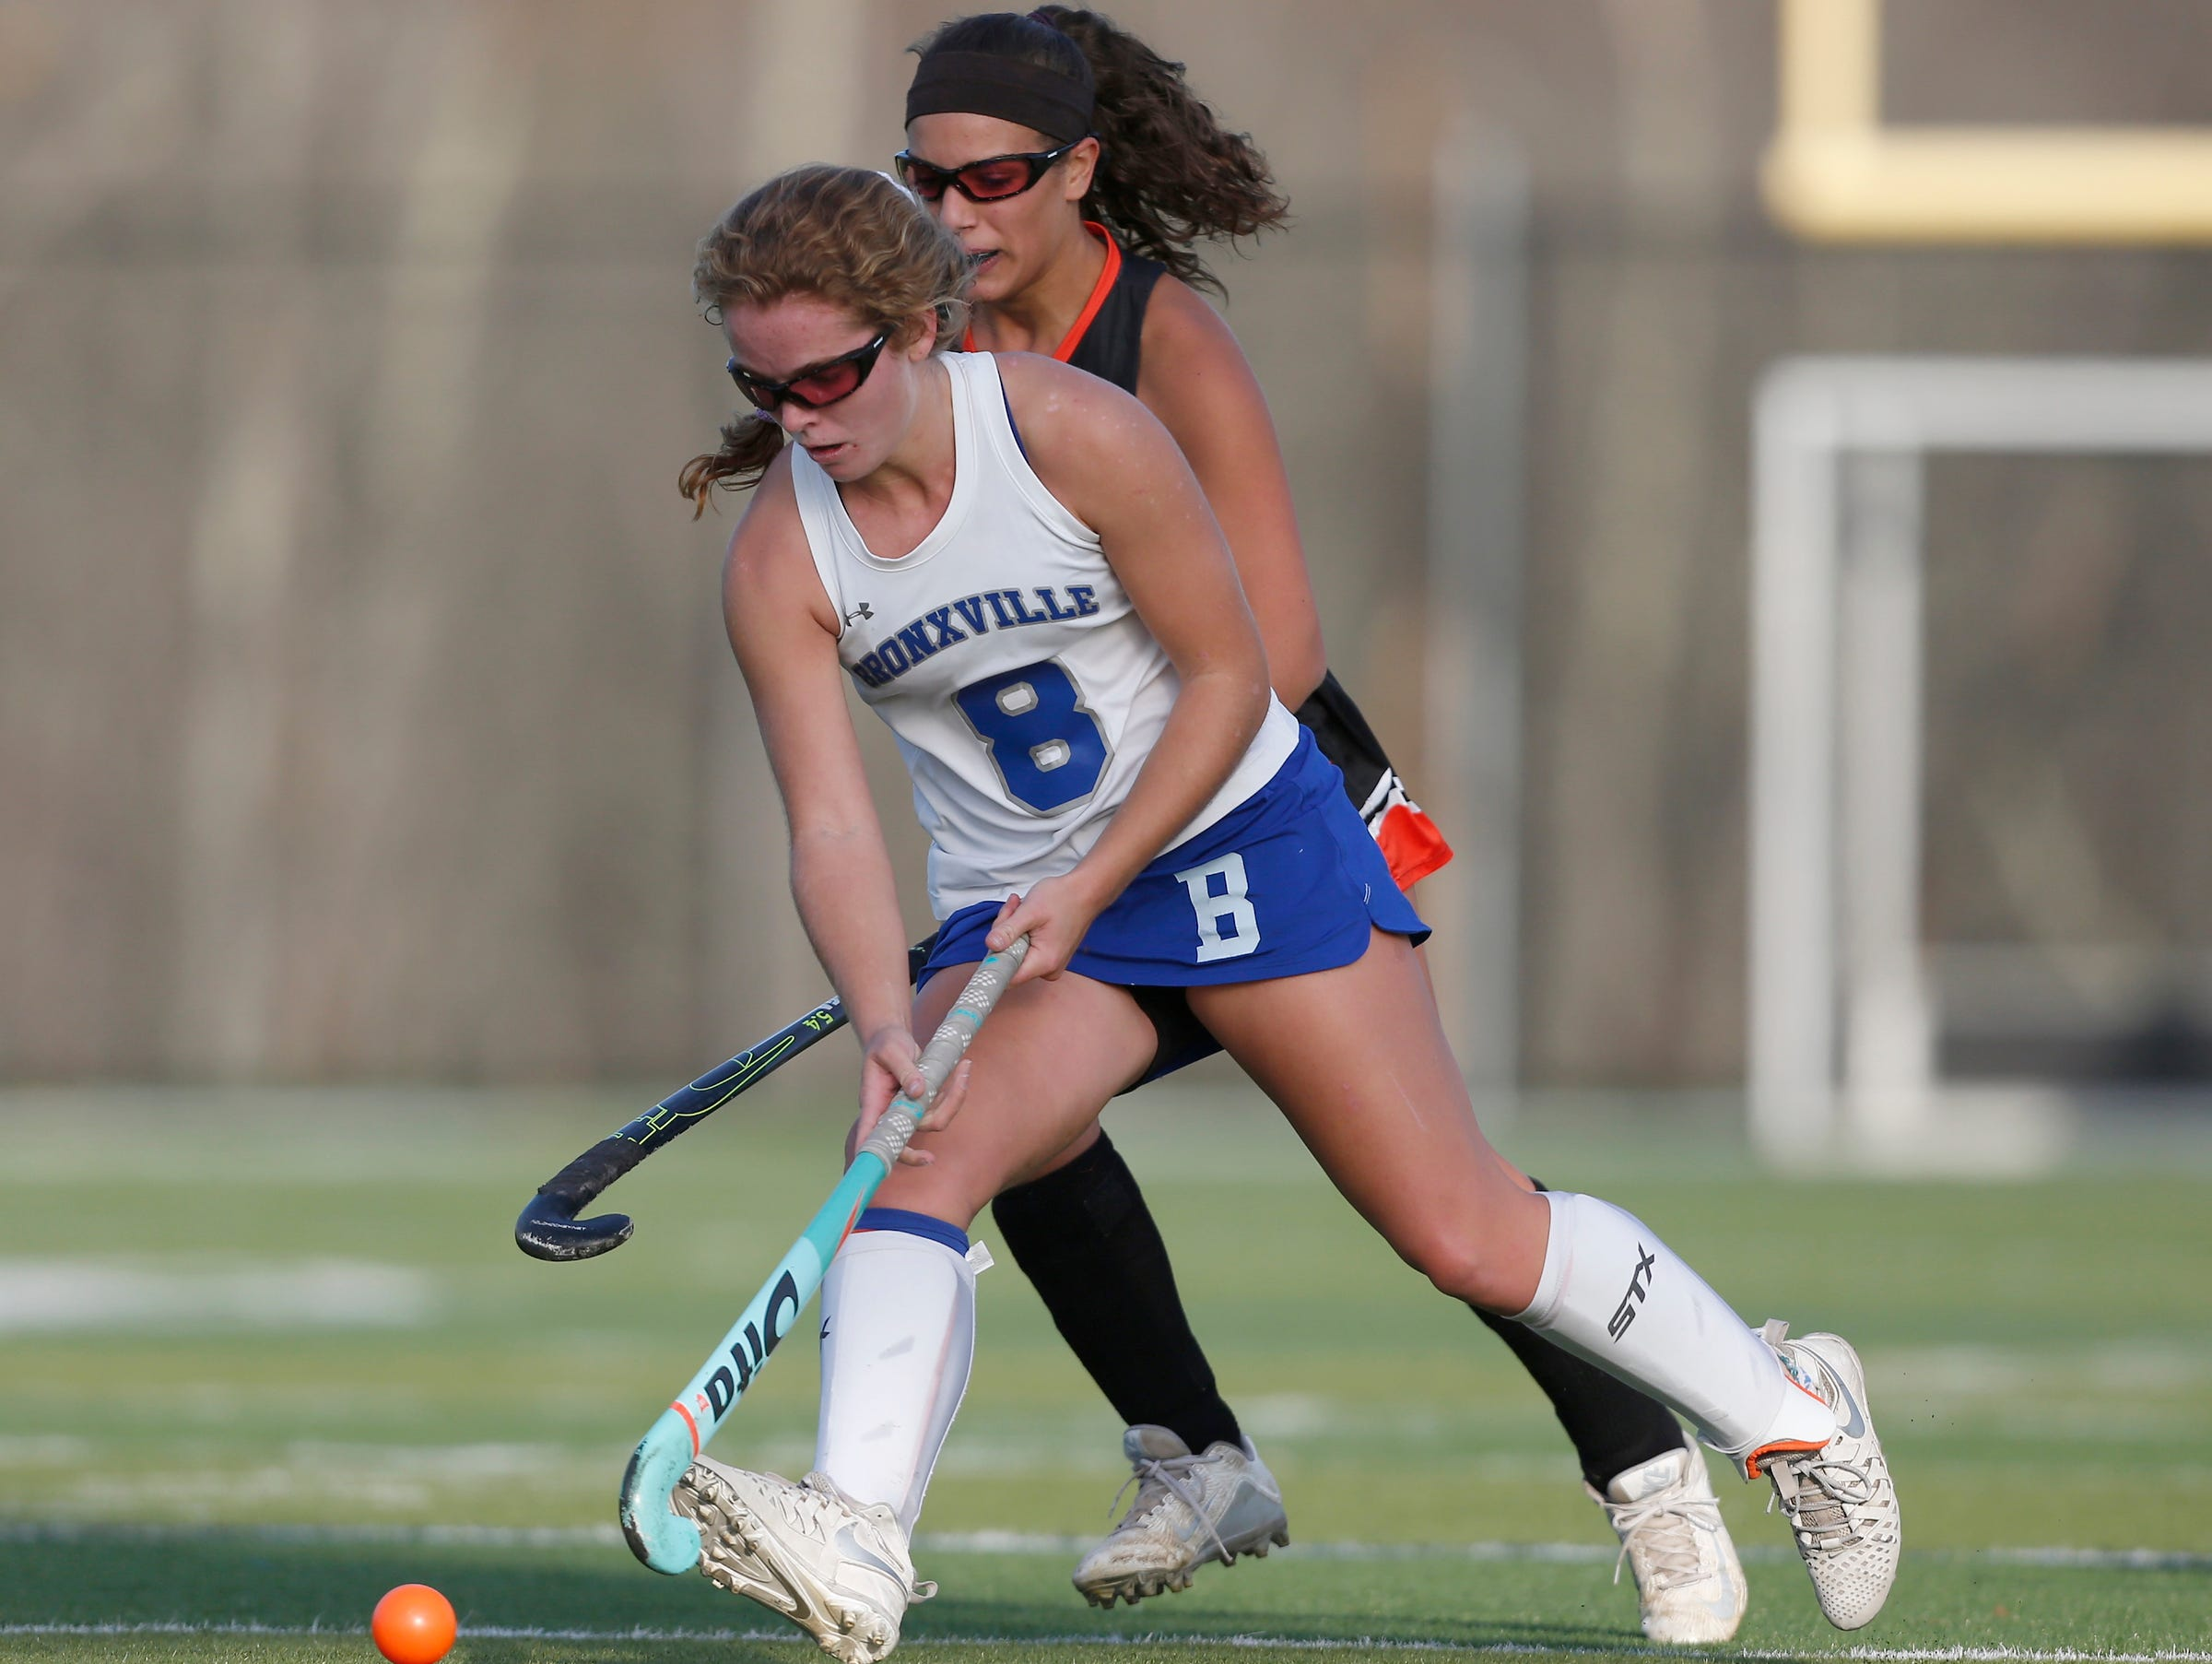 Bronxville's Ellie Walsh (8) works the ball during their 7-1 win over Croton in the Class C field hockey sectiion finals at Brewster High School on Tuesday, November 1, 2016.